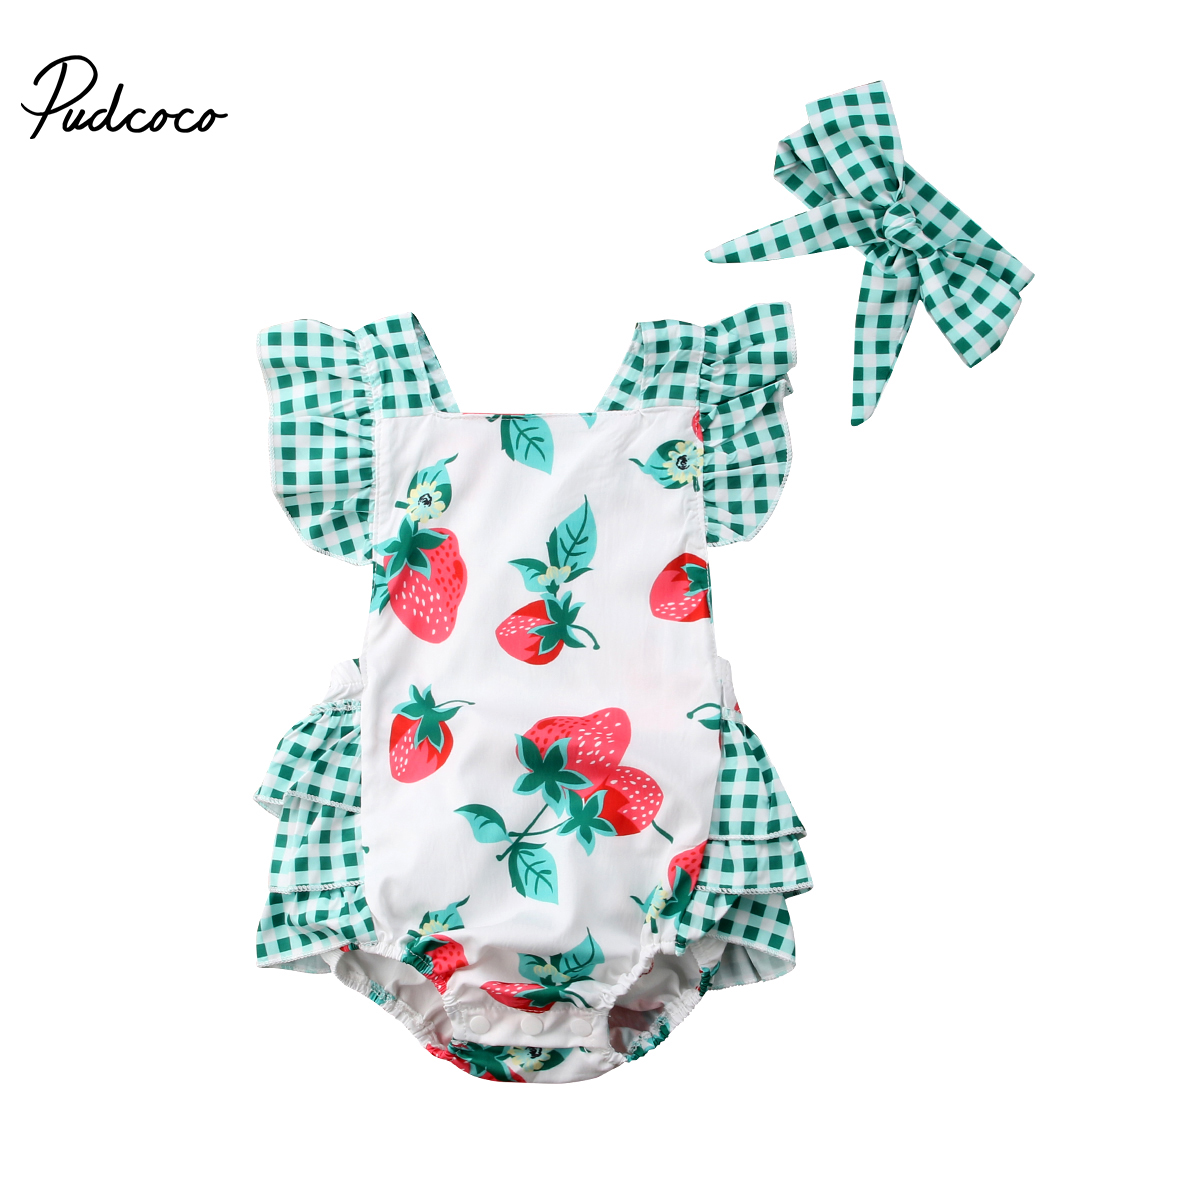 0-24M Baby Girl Clothes Summer Rompers Newborn Baby Girl Print Romper Jumpsuit Infant Headband Clothes Outfits Set summer newborn infant baby girl romper short sleeve floral romper jumpsuit outfits sunsuit clothes